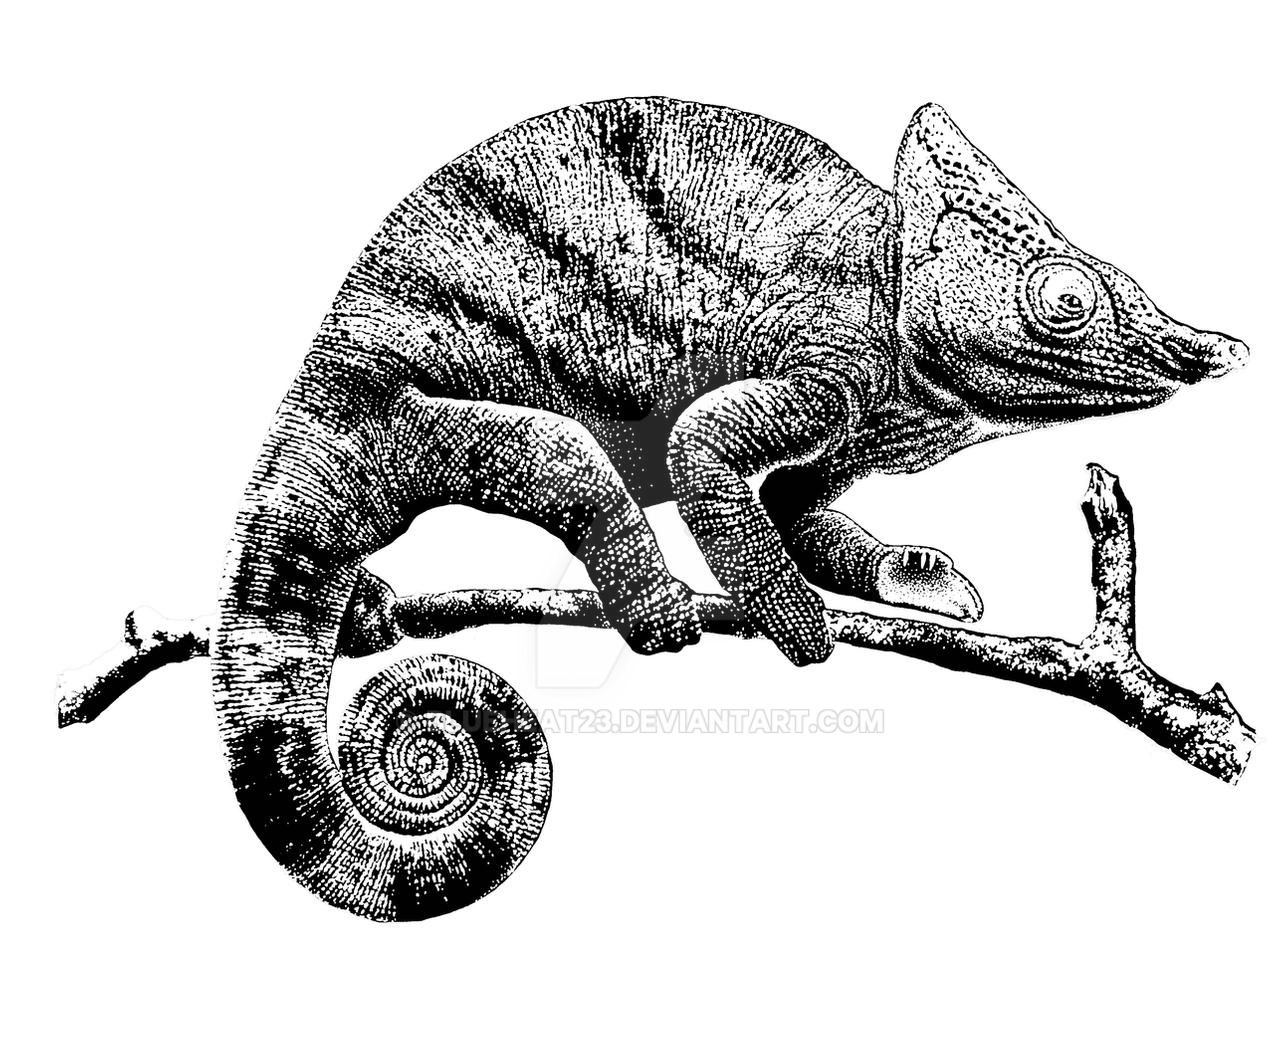 chameleon drawings flap necked chameleon coloring pages hellokidscom drawings chameleon